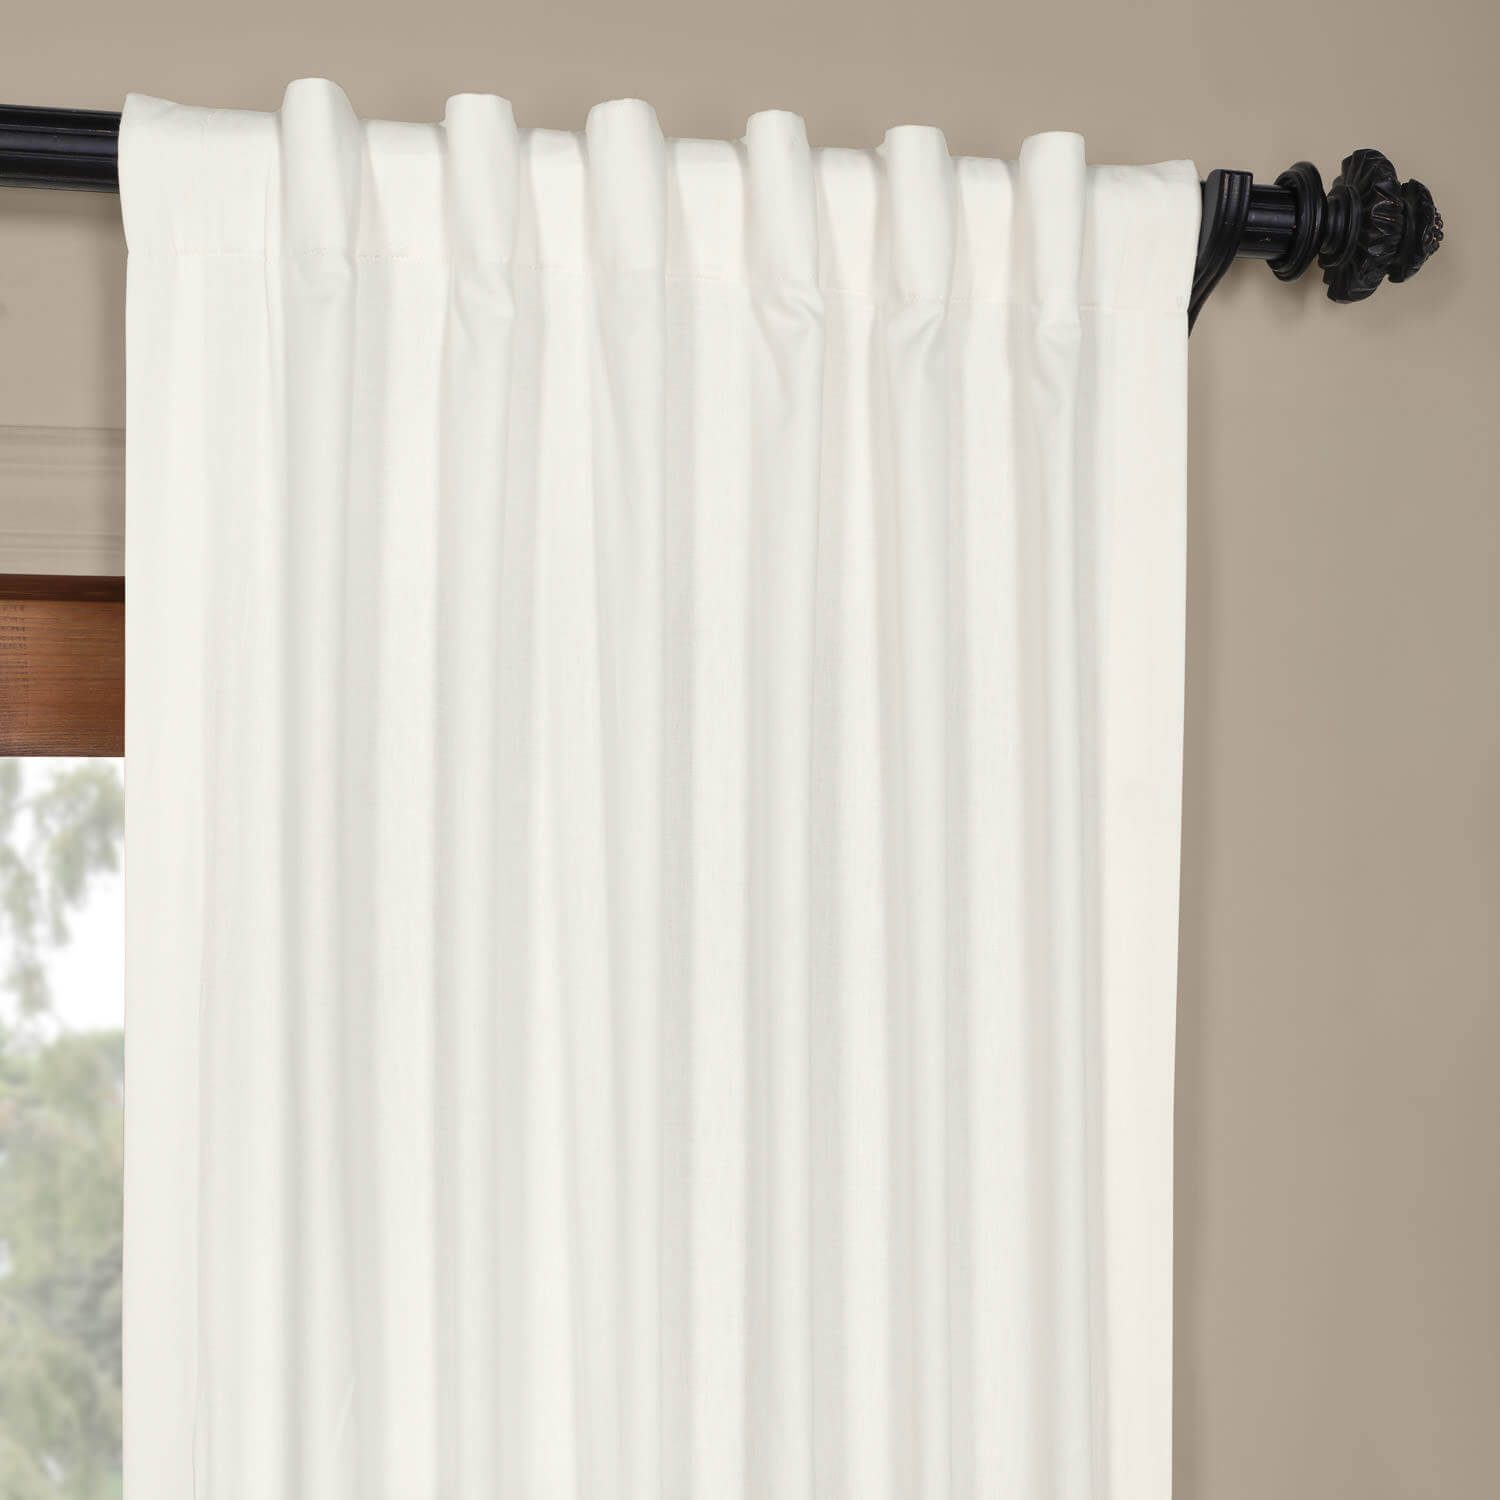 Fresh Popcorn and Shaker Beige Horizontal Colorblock Panama Curtain